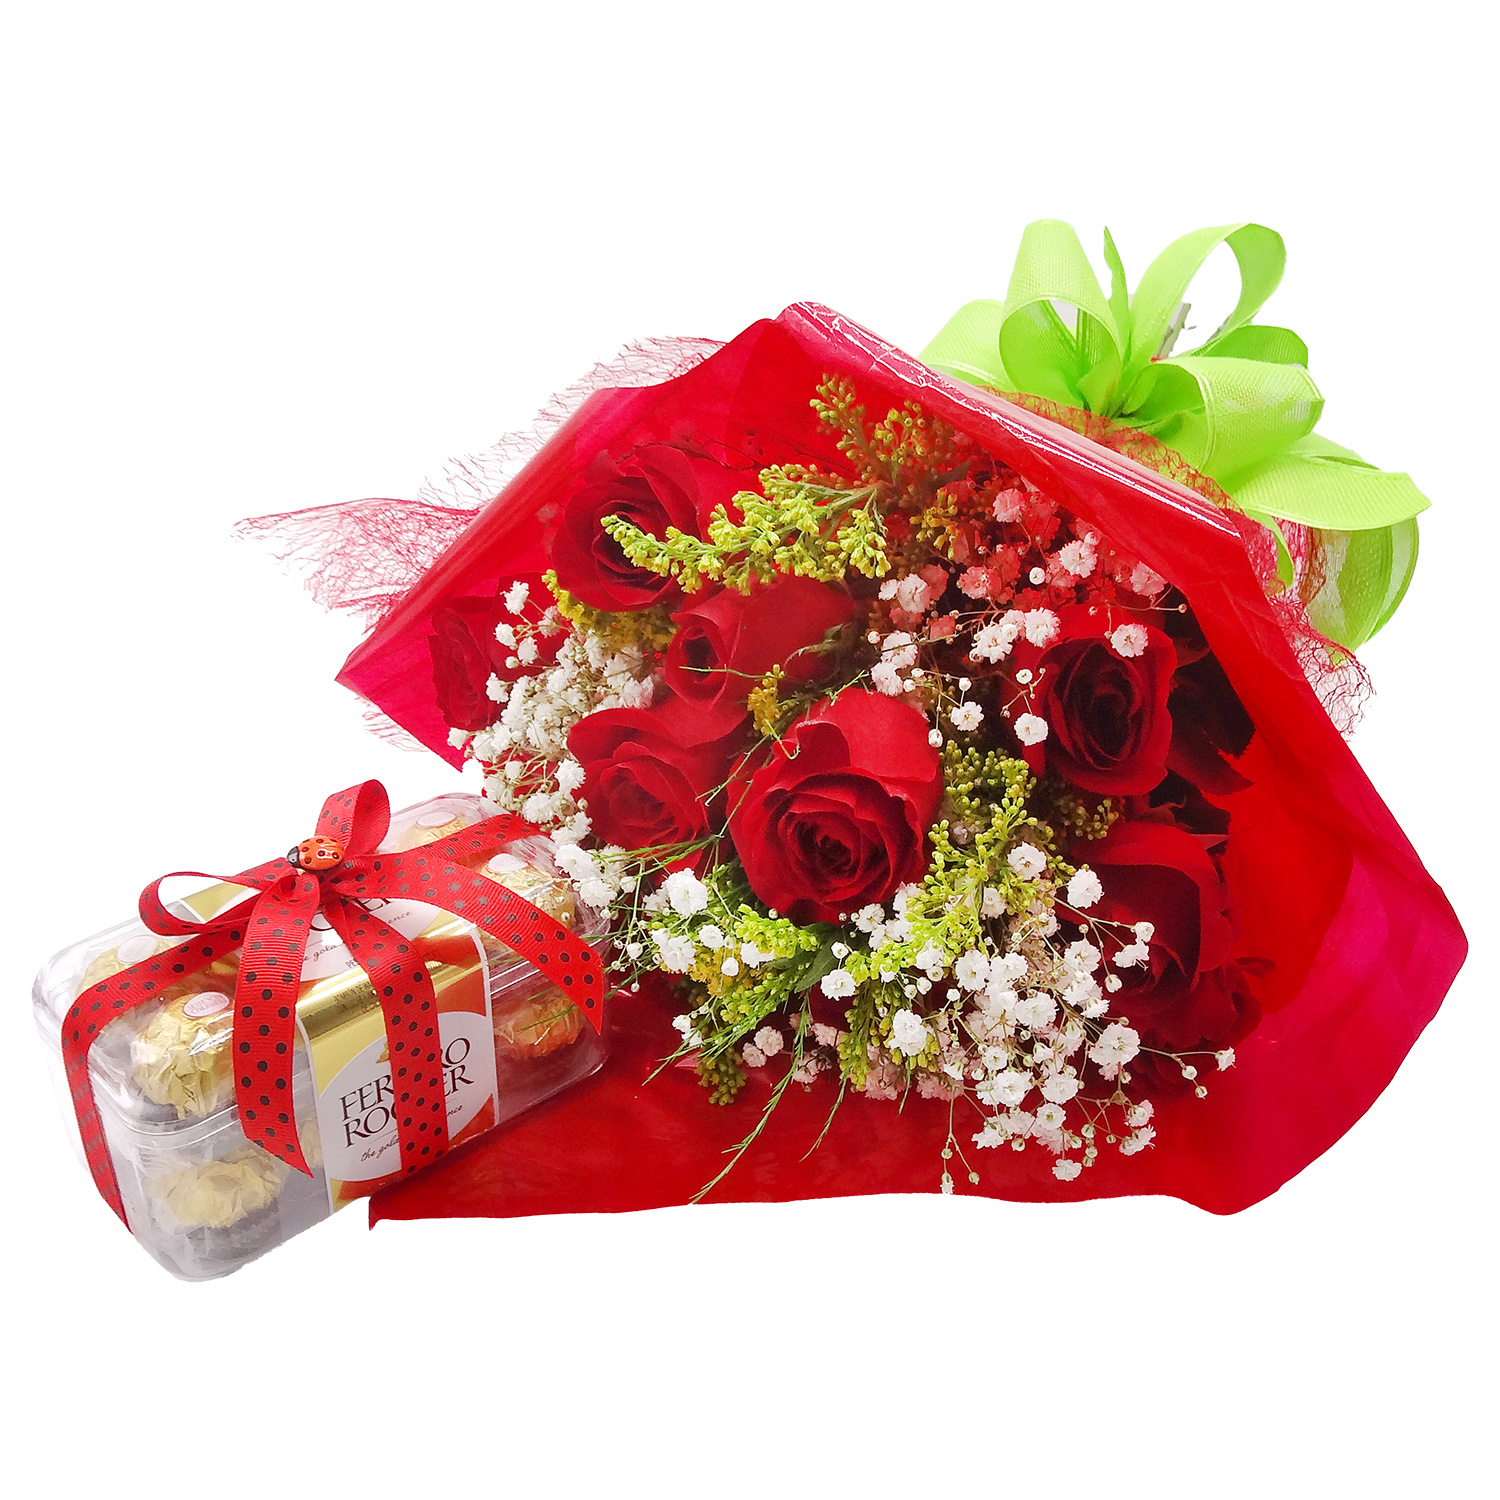 Regalo Bouquet de Rosas con Chocolates